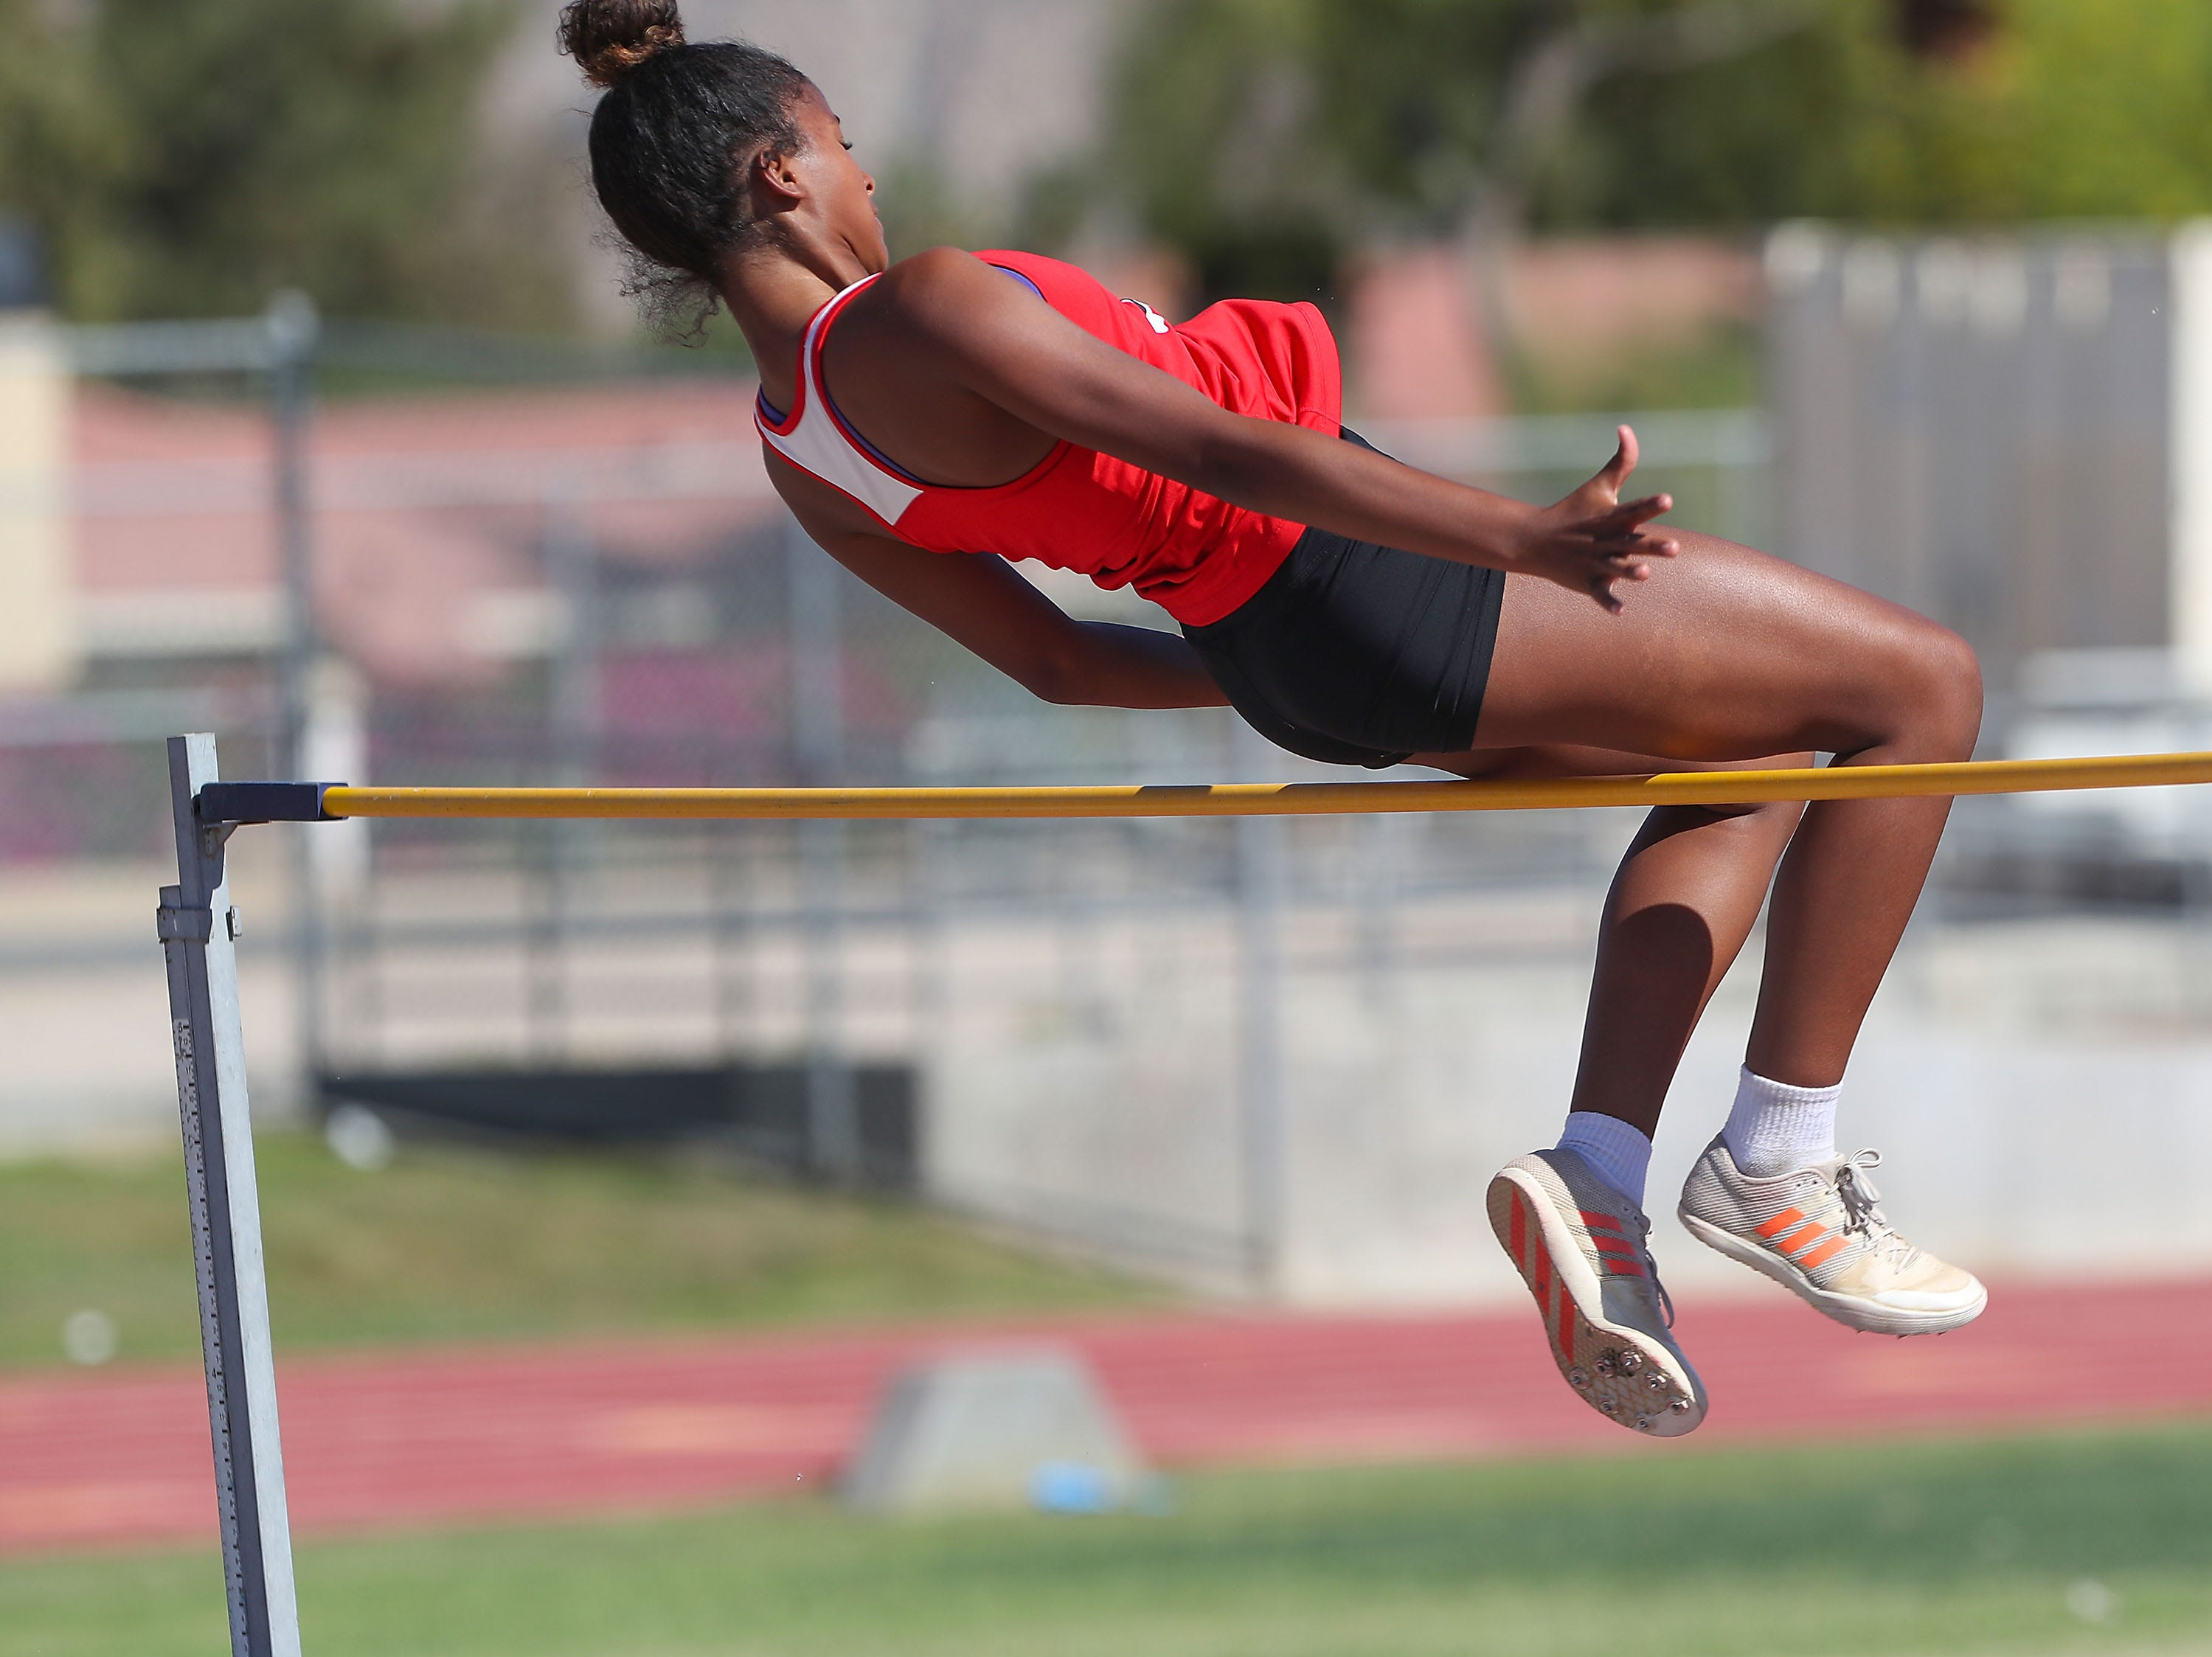 Maricela Wright of Palm Springs wins the high jump during the Desert Empire League track championships at Palm Desert High School, April 23, 2019.